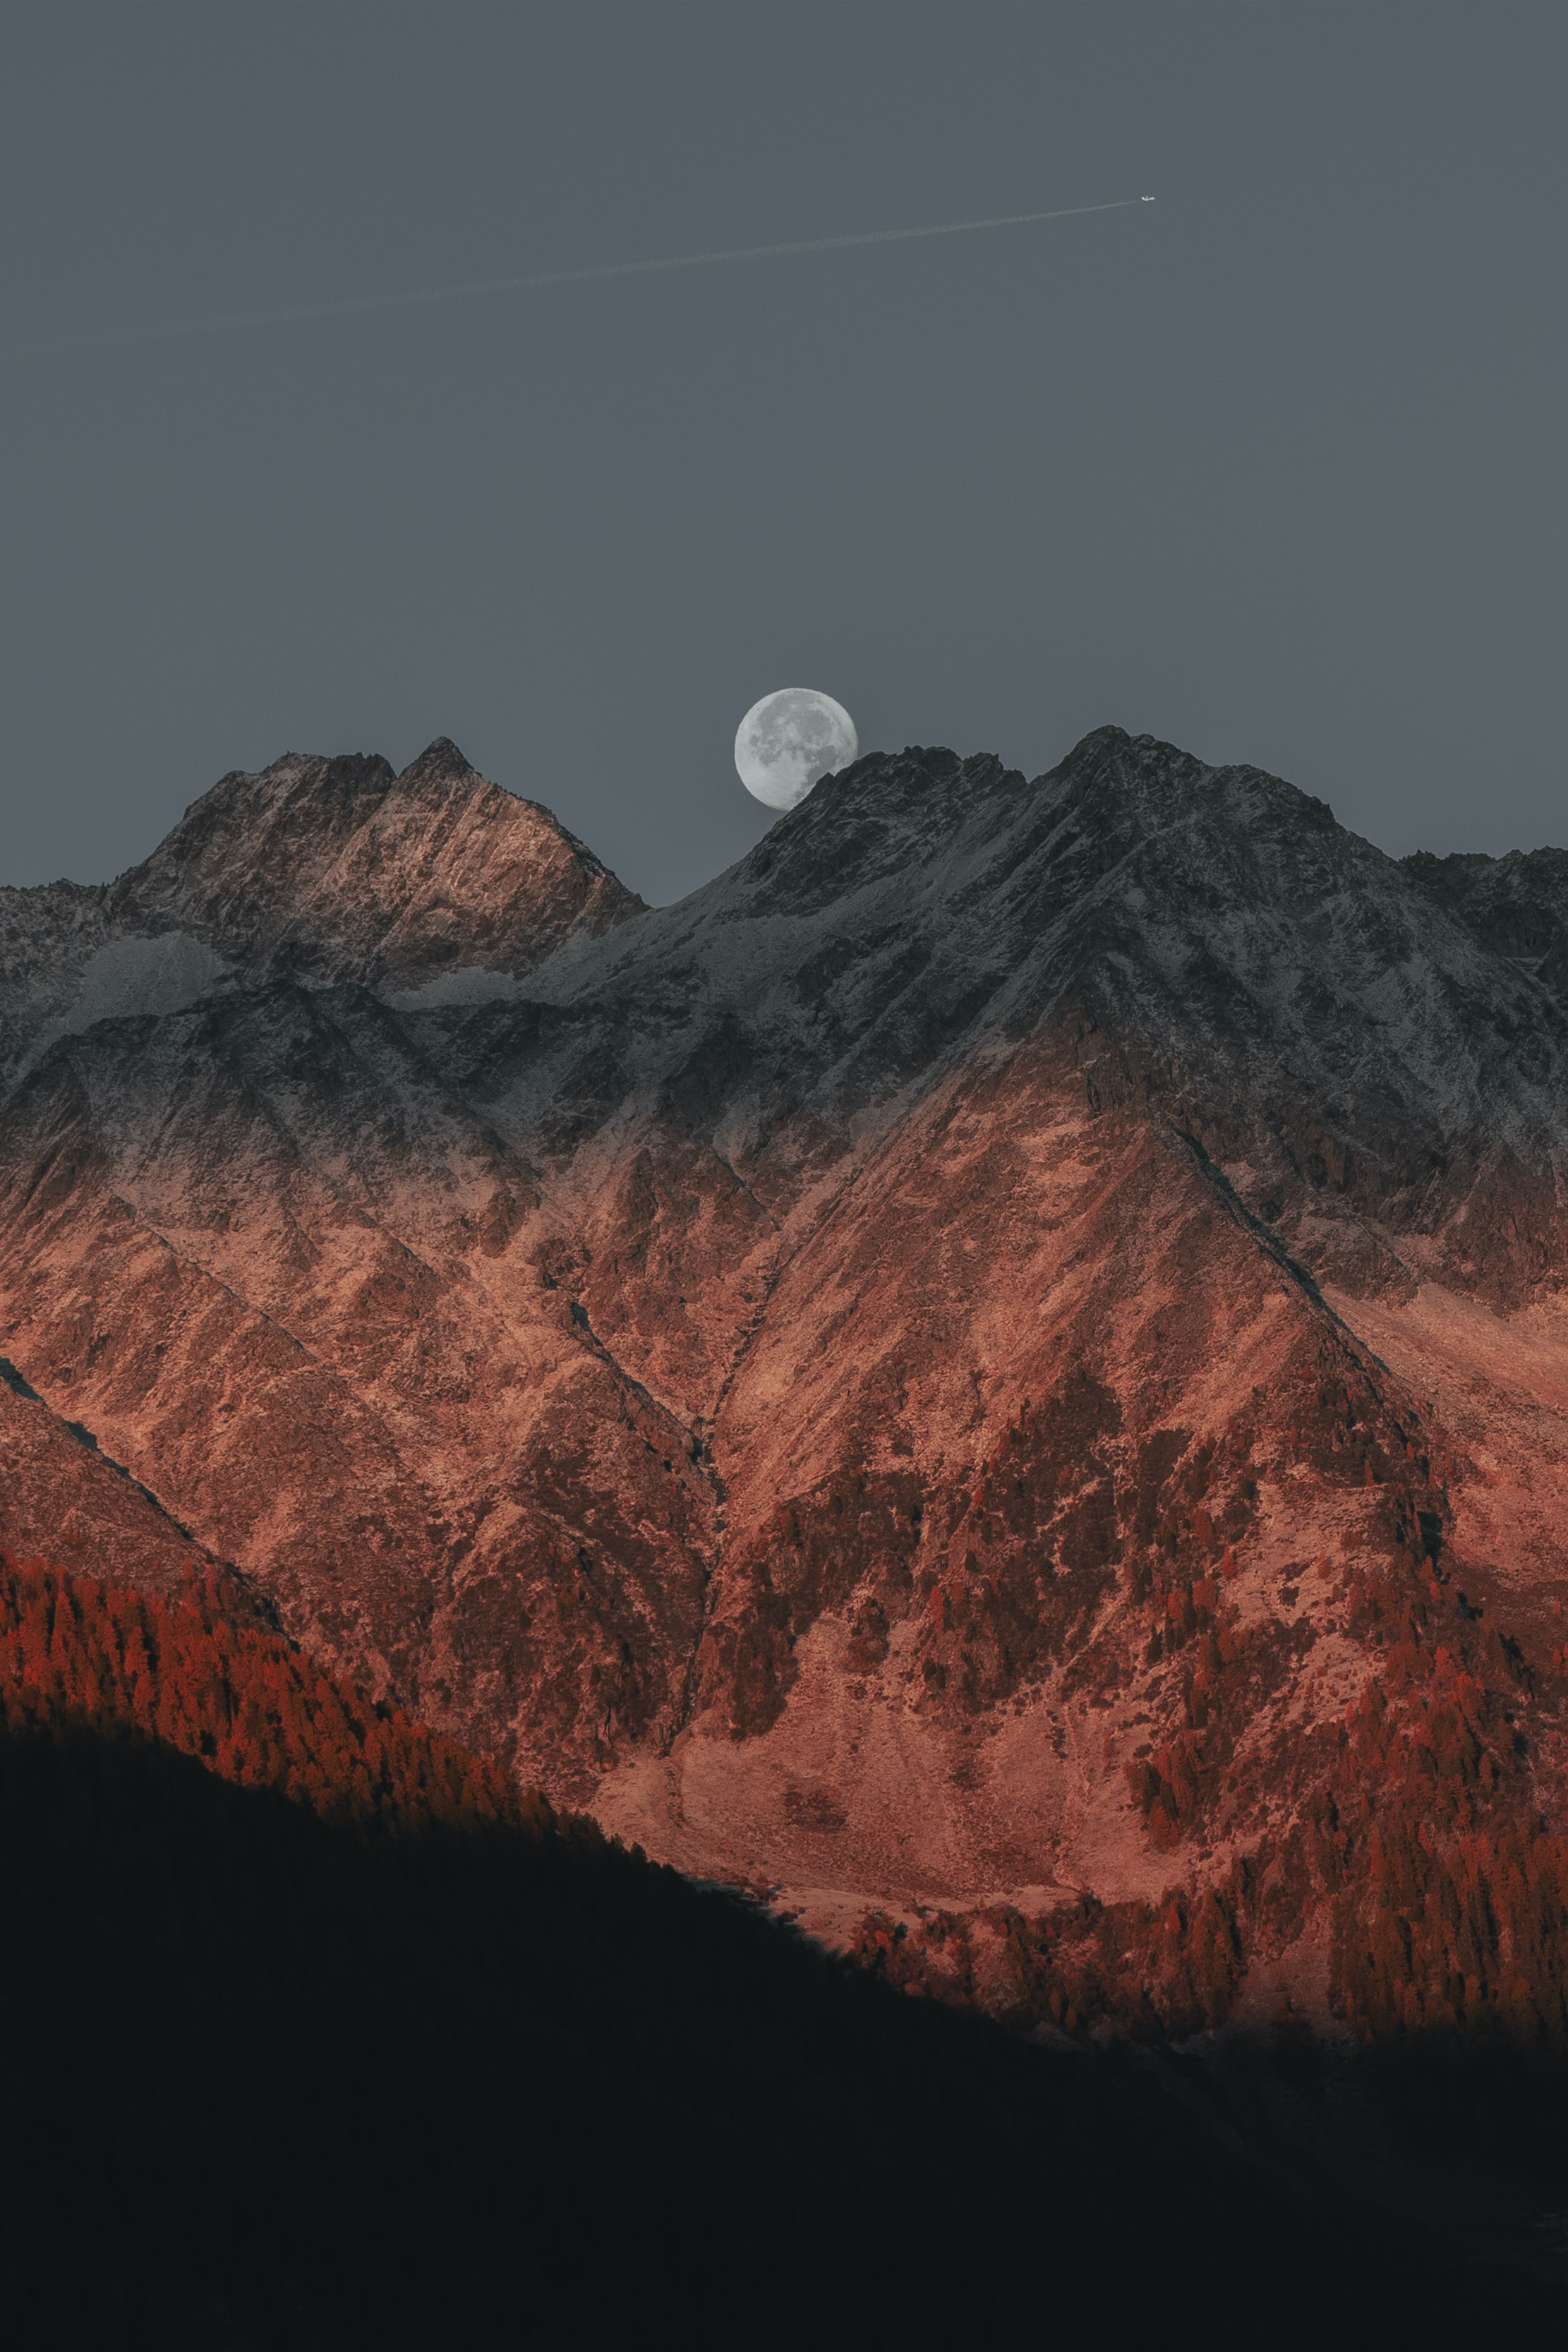 full moon hiding on mountain